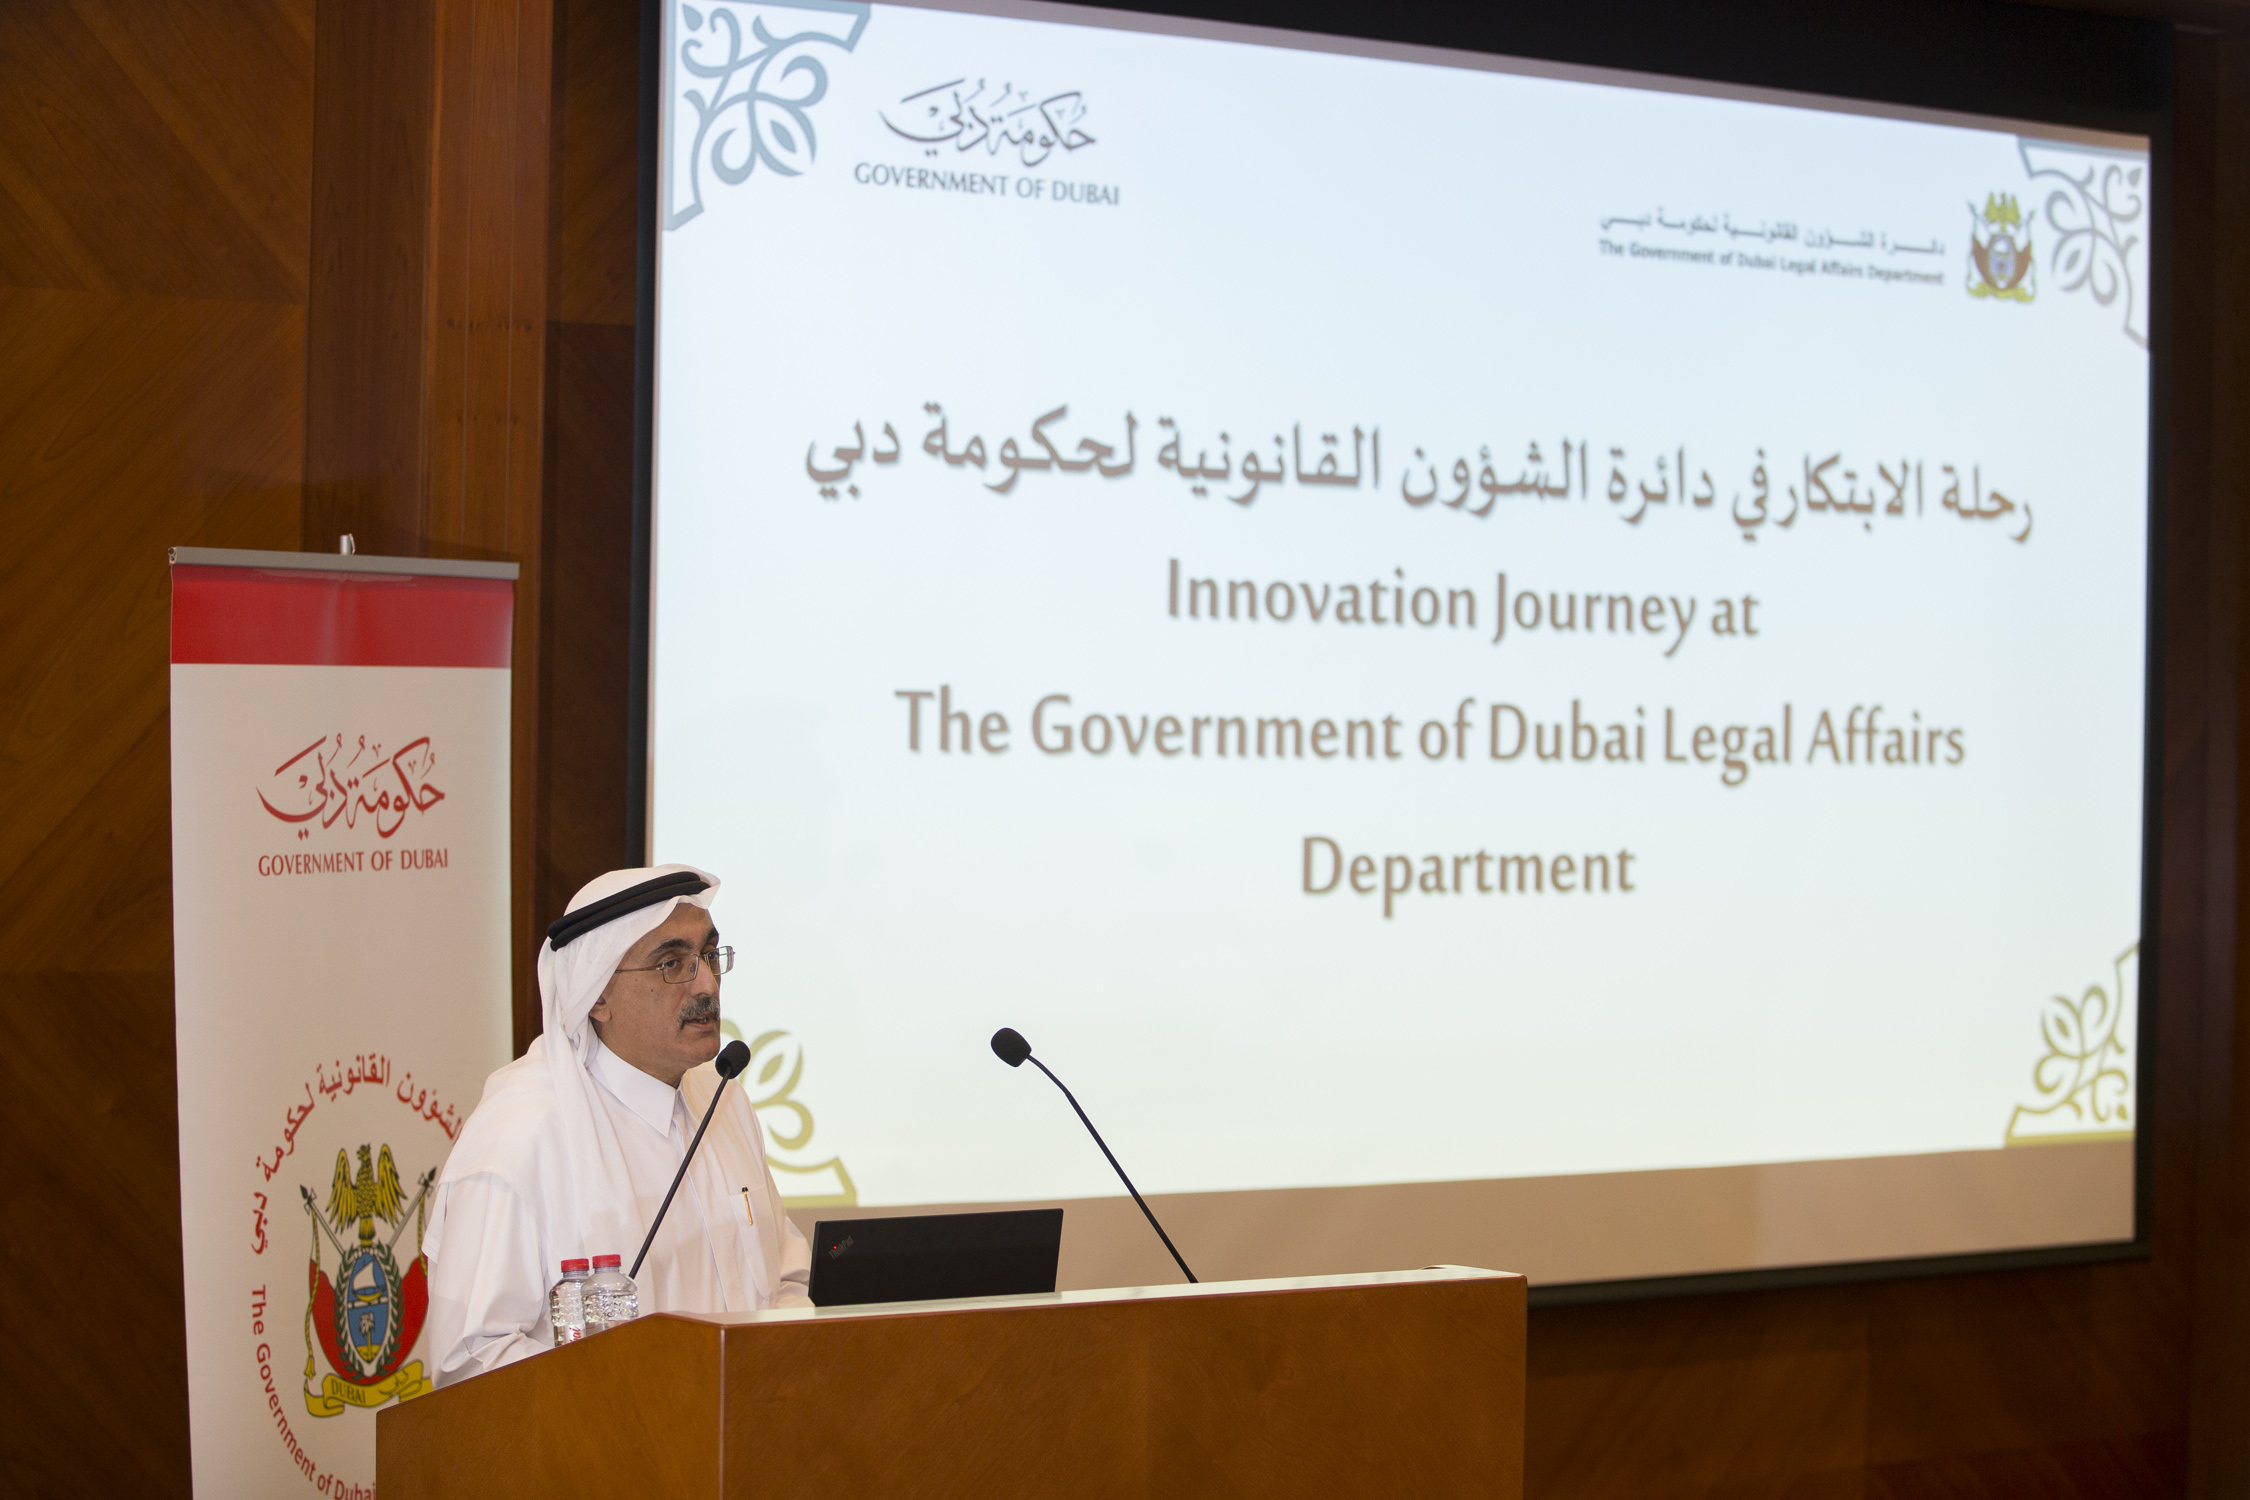 Government of Dubai Legal Affairs Department awarded the